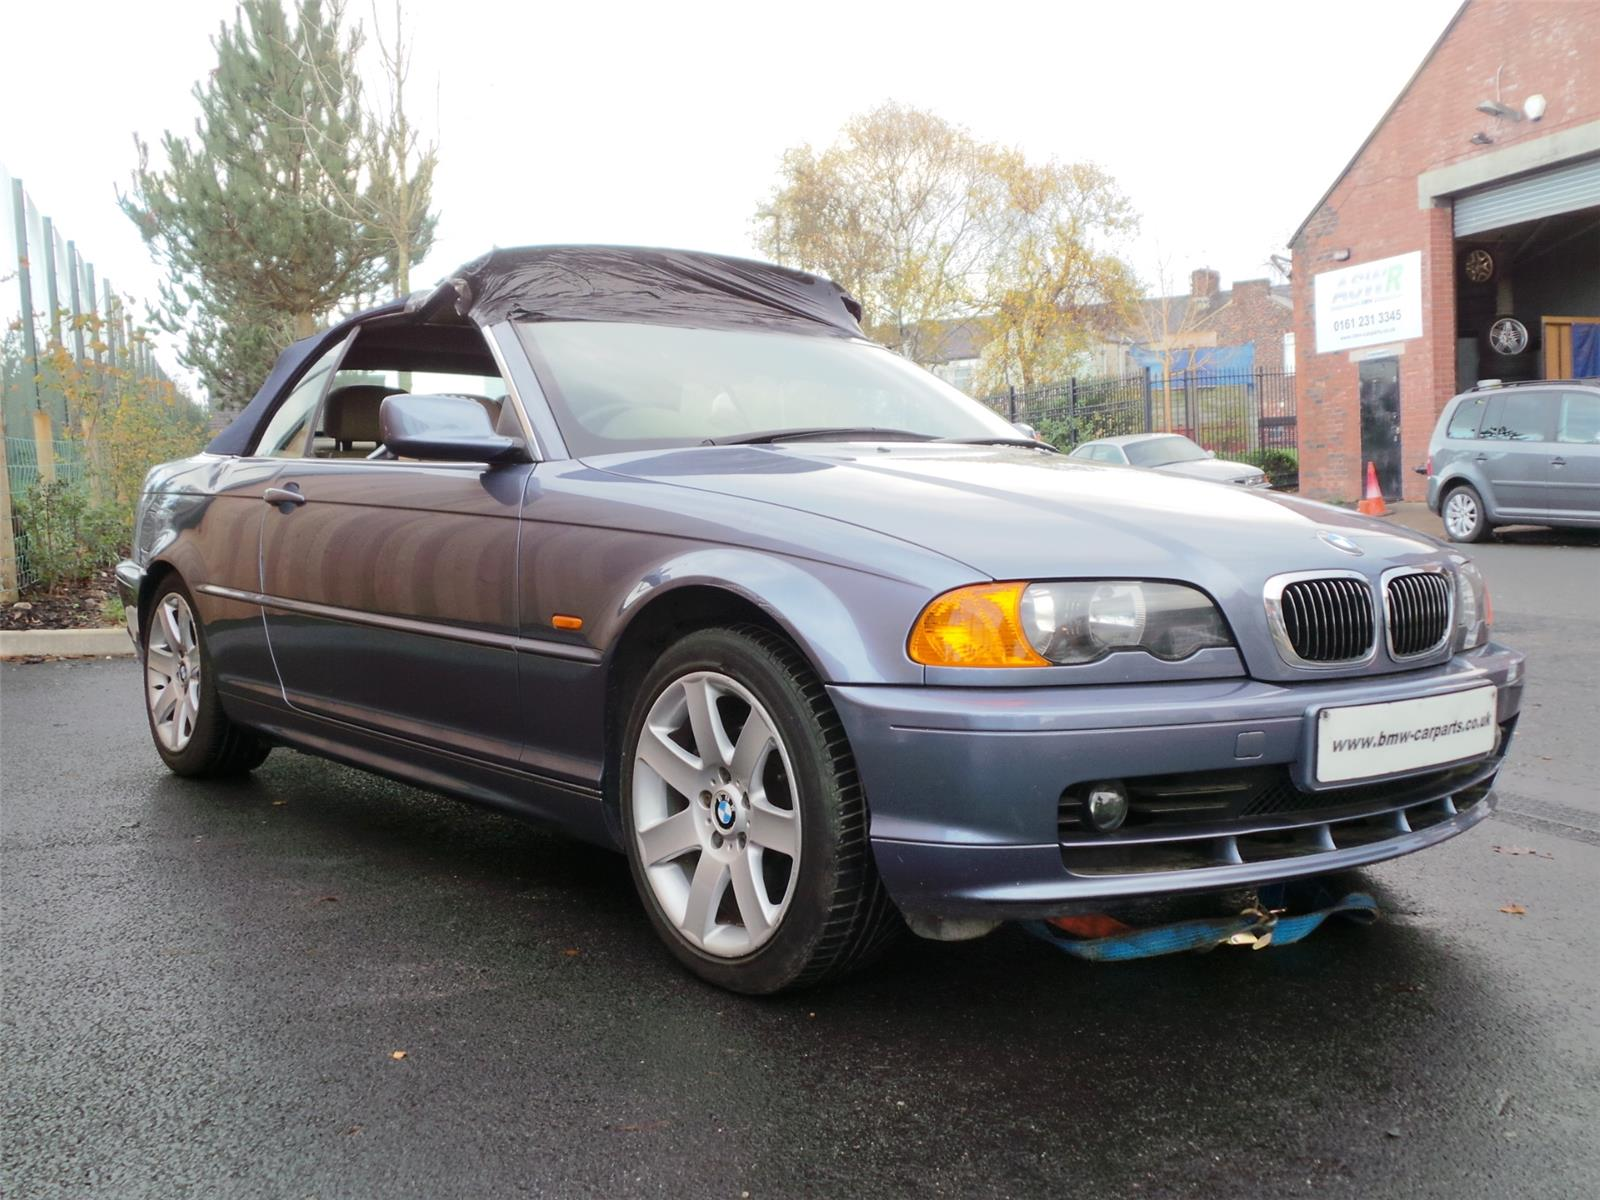 2000 bmw 3 series 323ci convertible petrol manual breaking for used and spare parts from. Black Bedroom Furniture Sets. Home Design Ideas